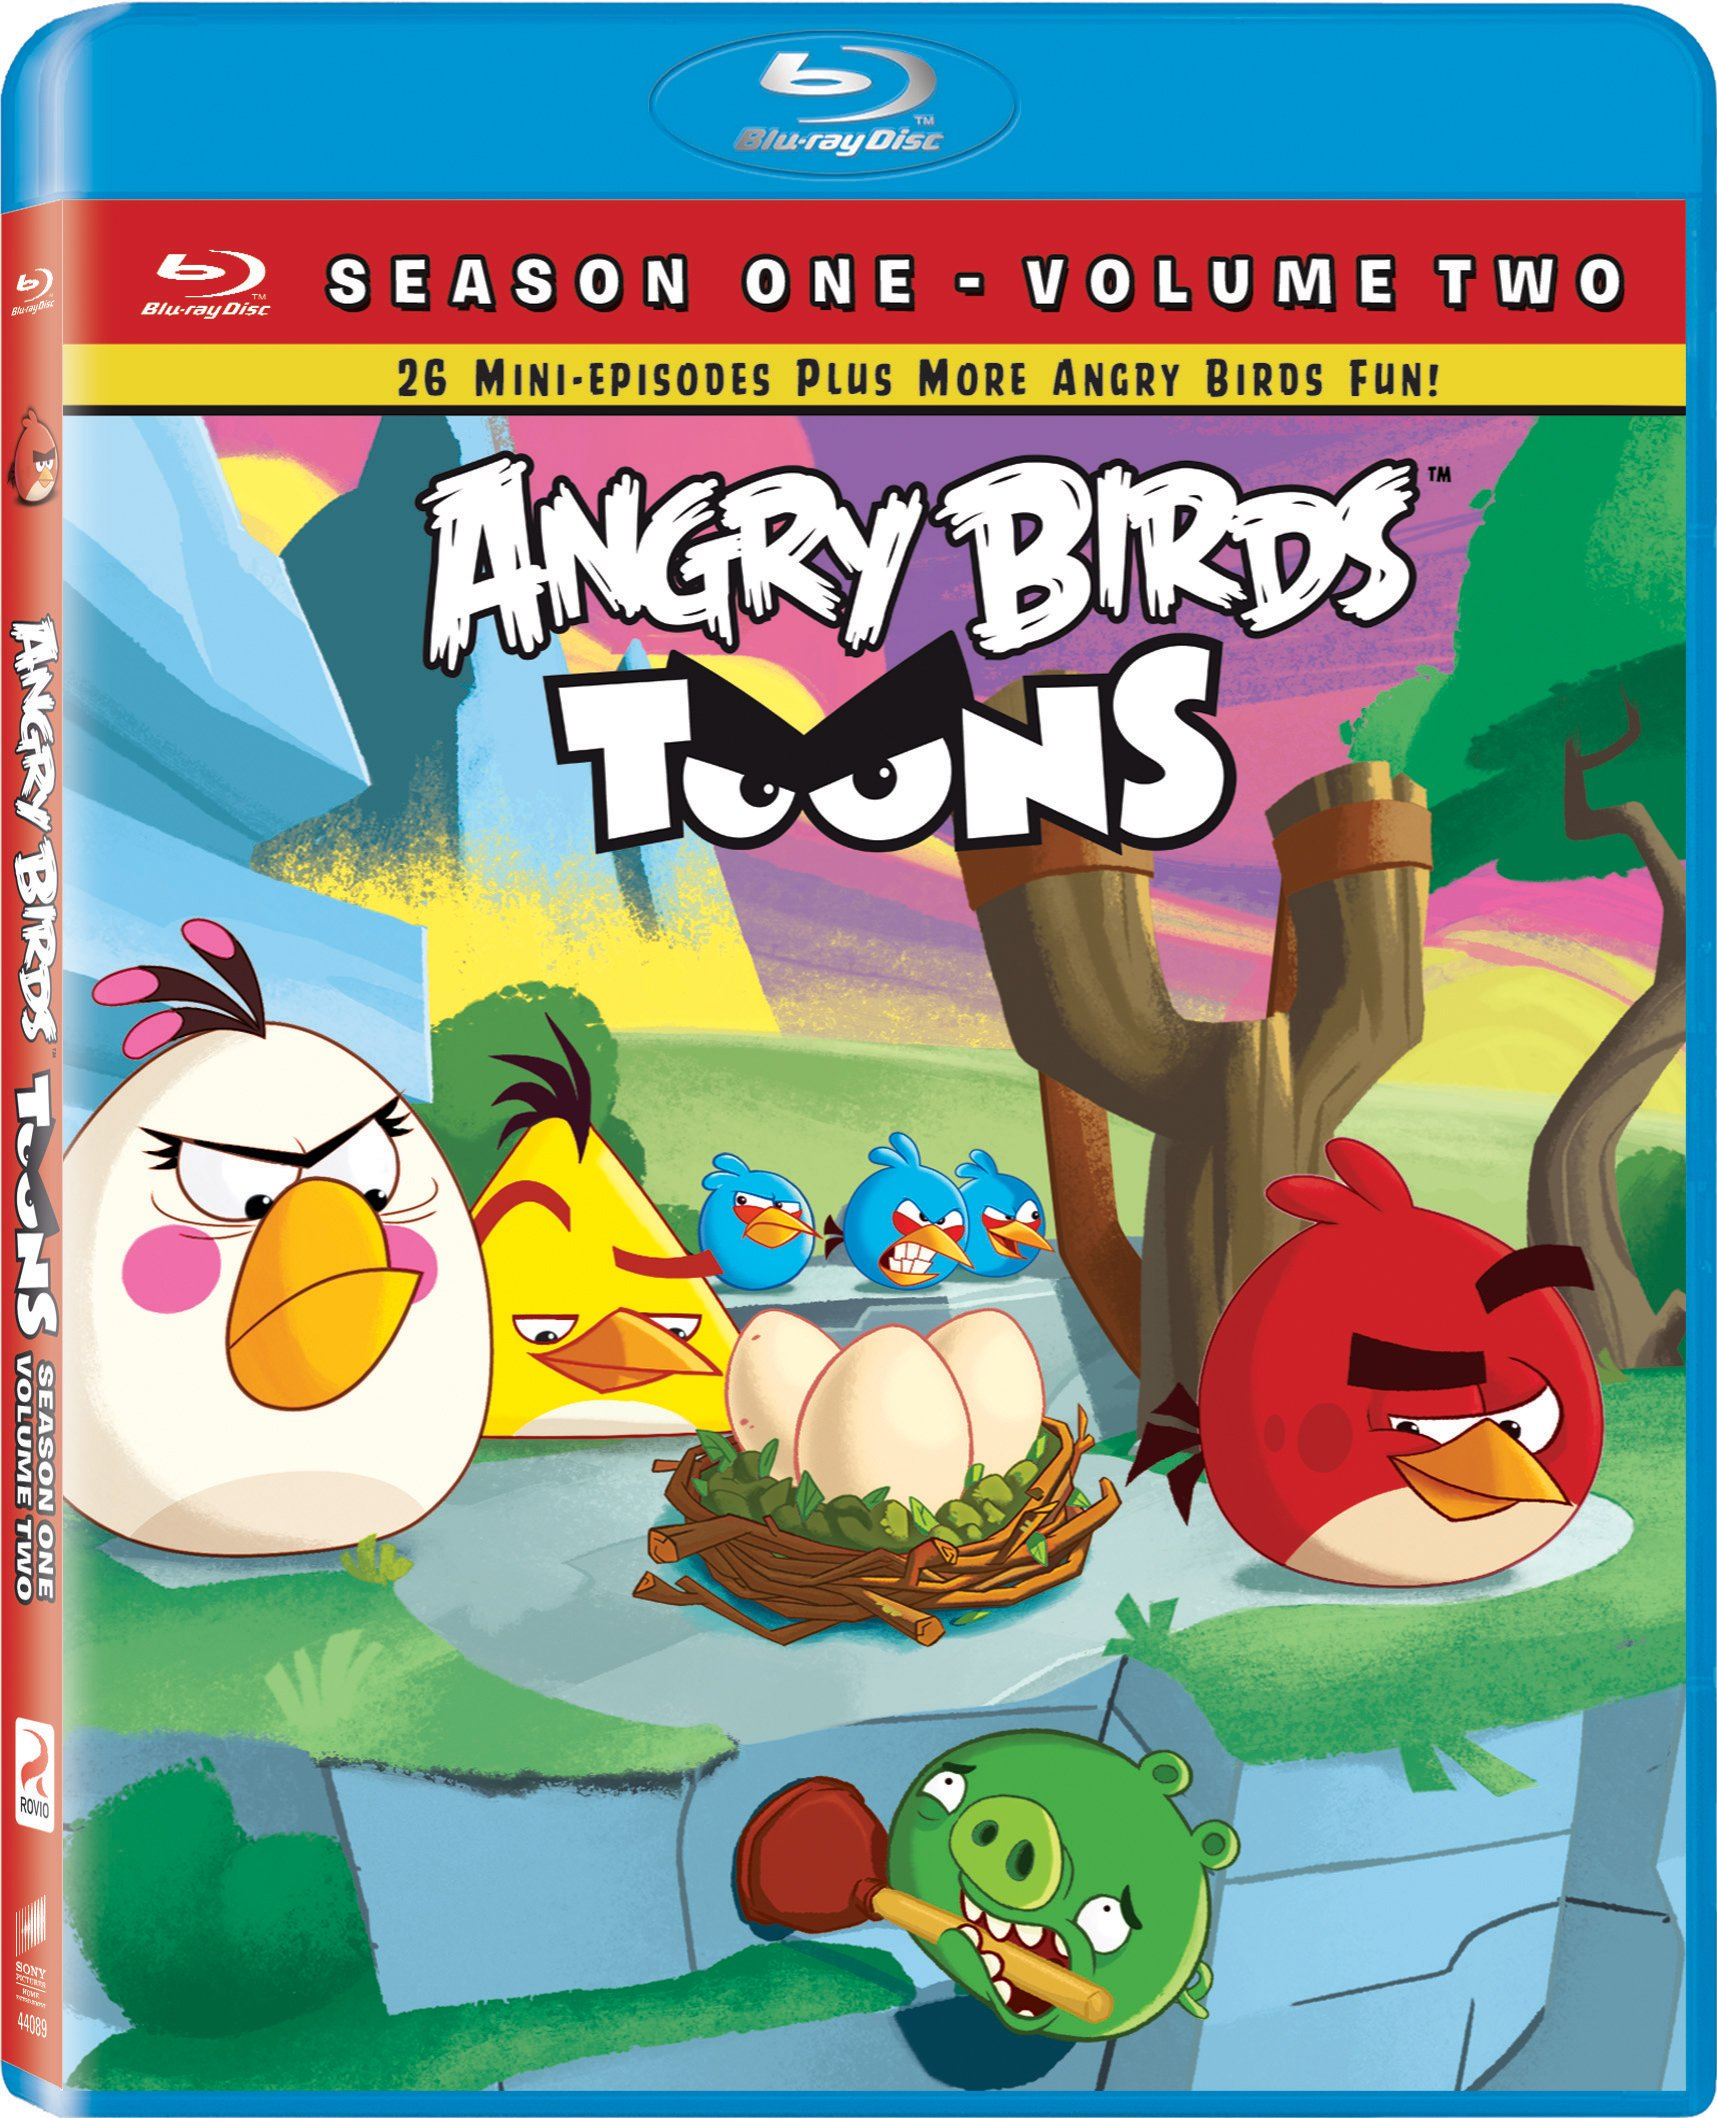 Blu-ray : Angry Birds Toons: Season One Volume 2 (, Widescreen)